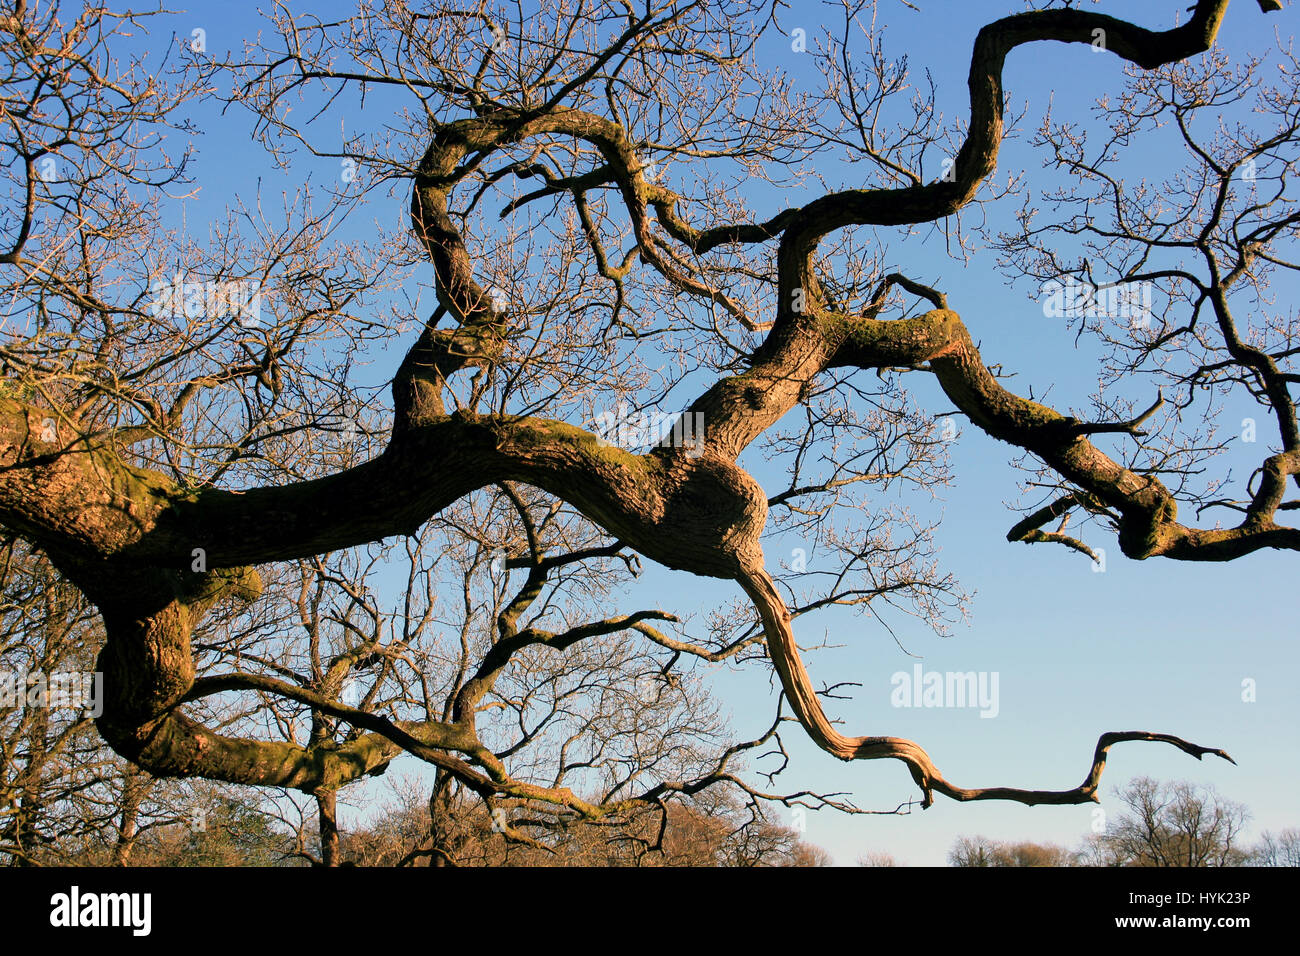 Ancient oak tree branches twisted against a blue